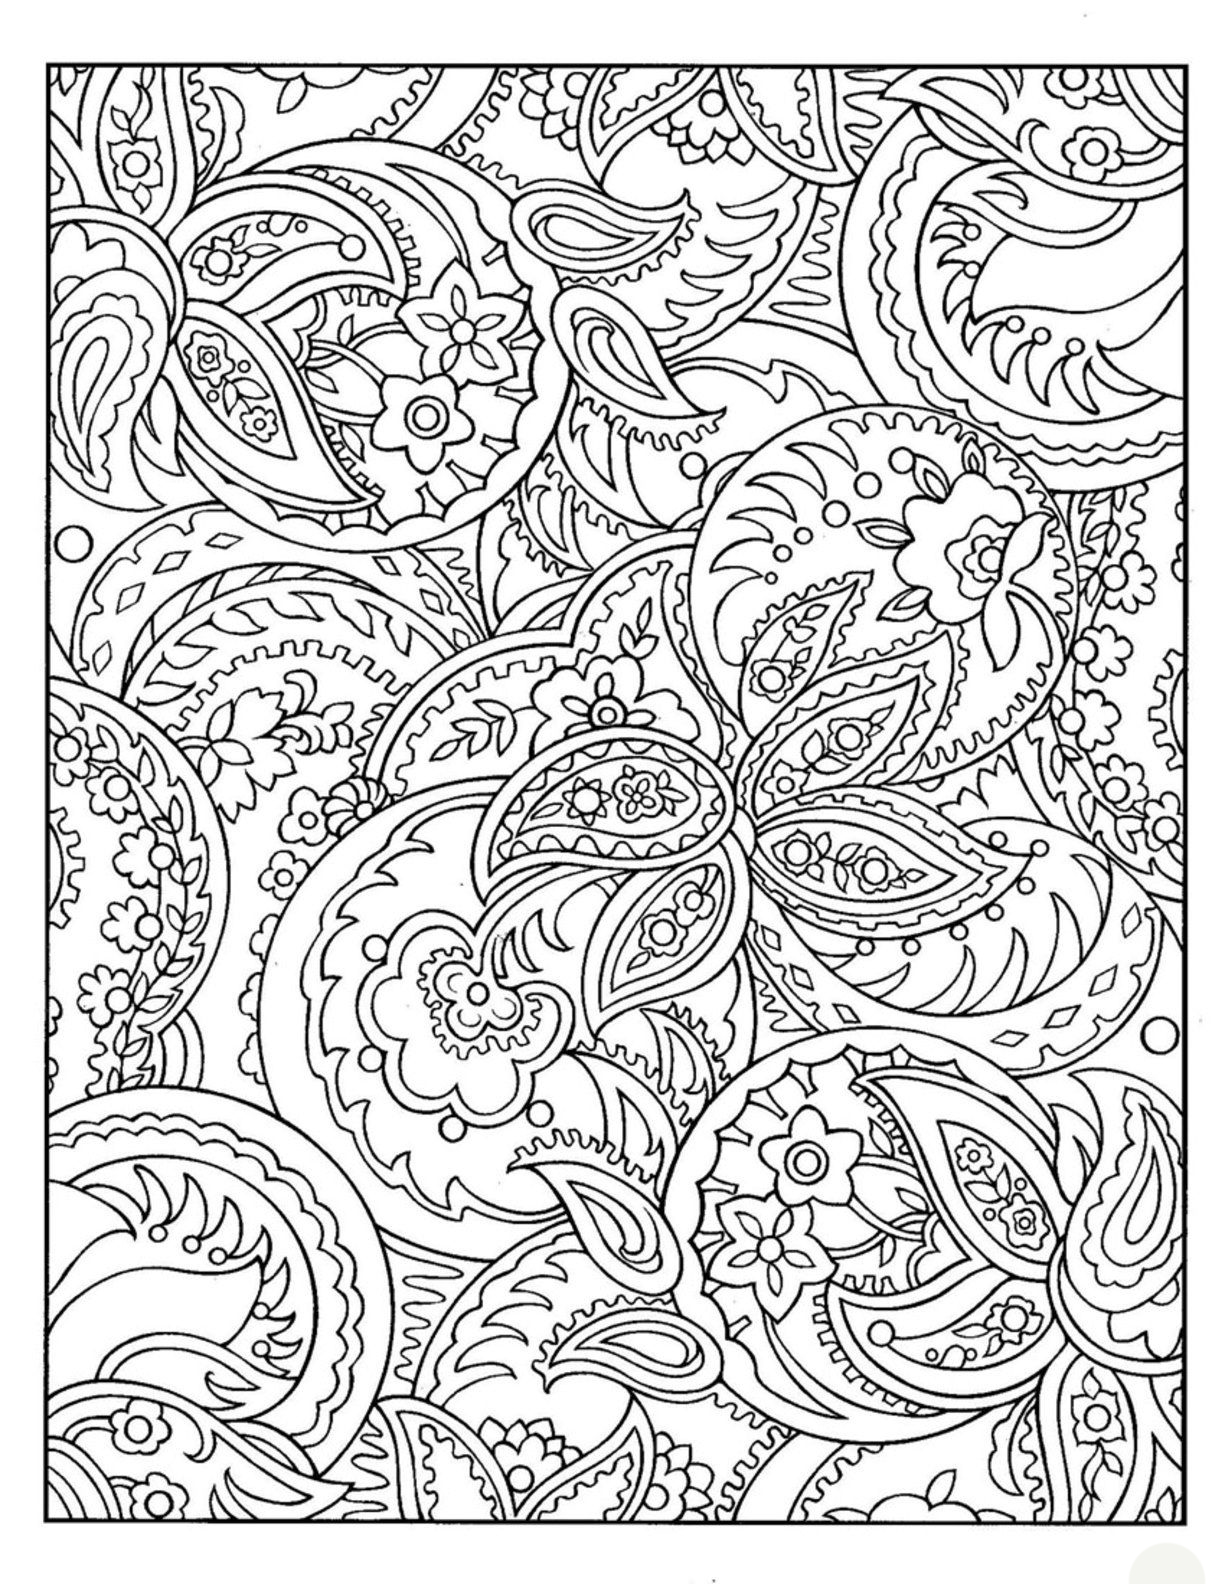 coloring pattern pages cool designs to color in geometric design pattern pattern pages coloring